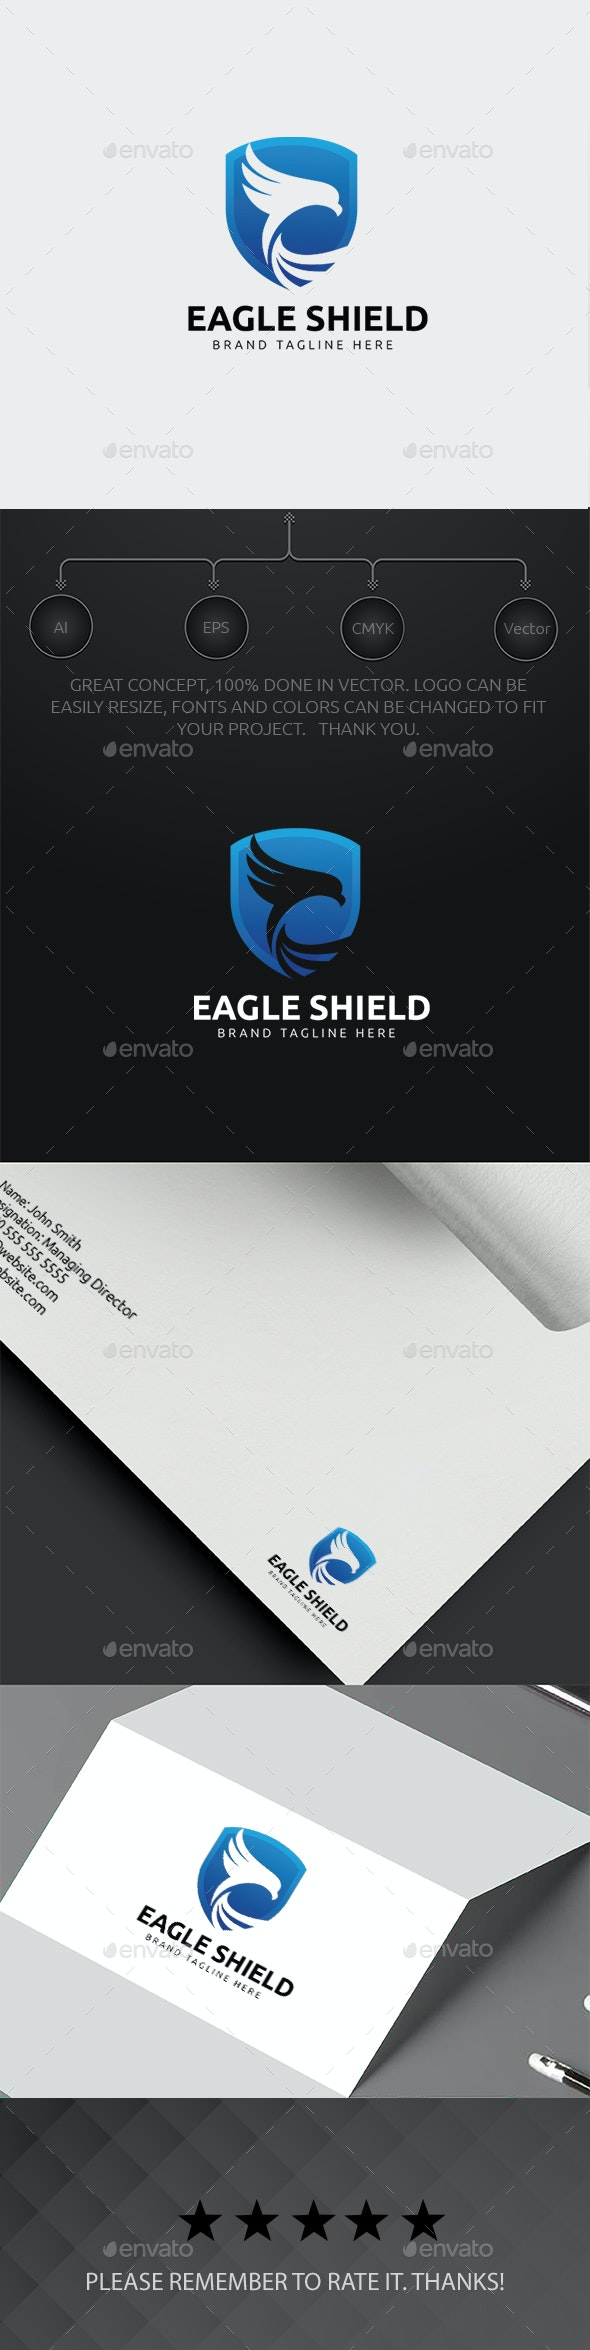 Eagle Shield Logo - Animals Logo Templates